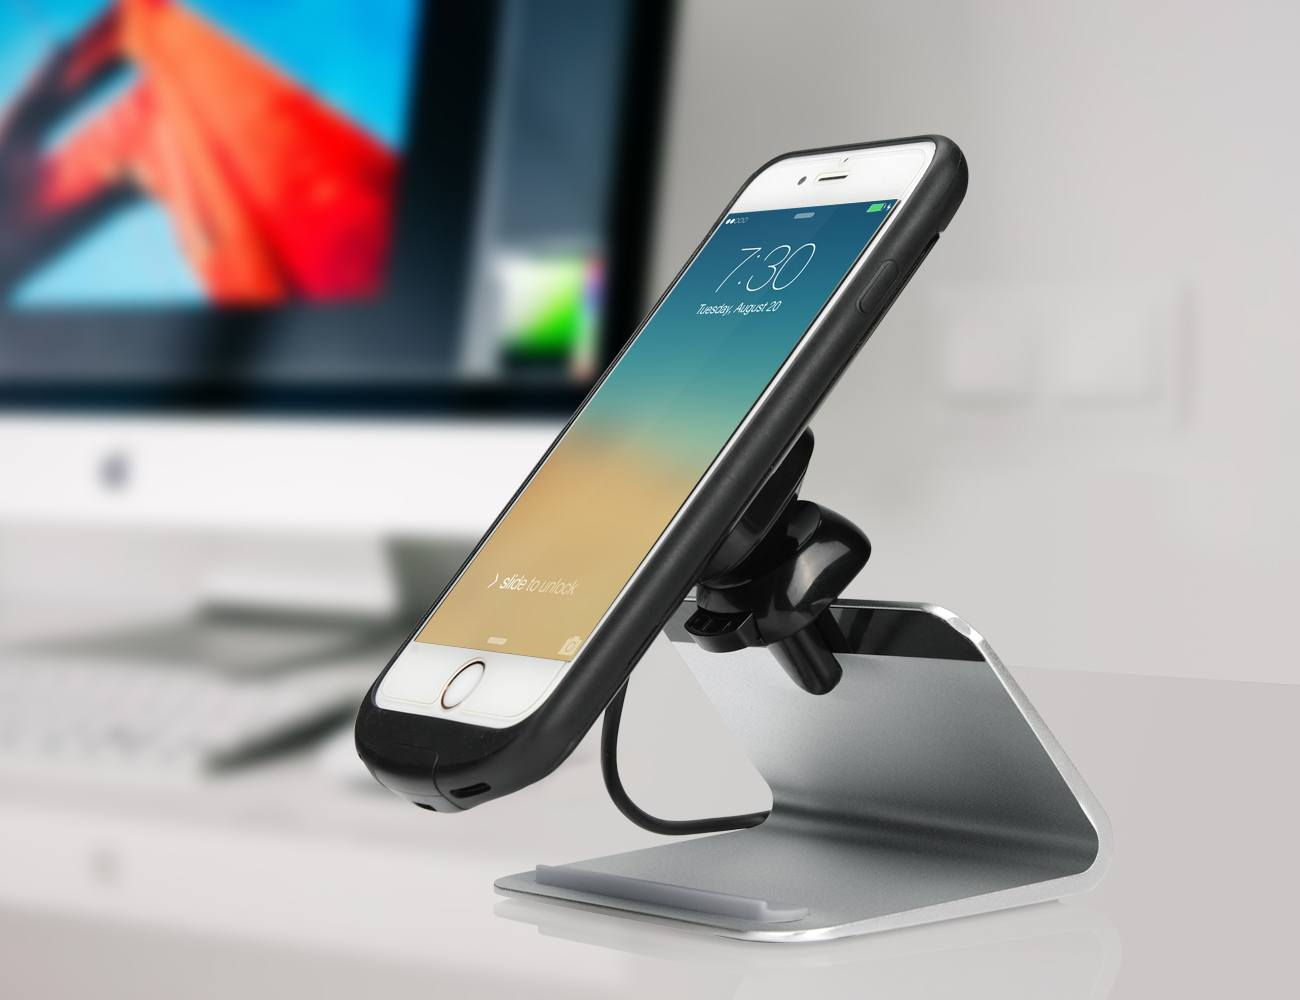 SonicPower – World's Fastest Wireless Charger for iPhone 6/6s